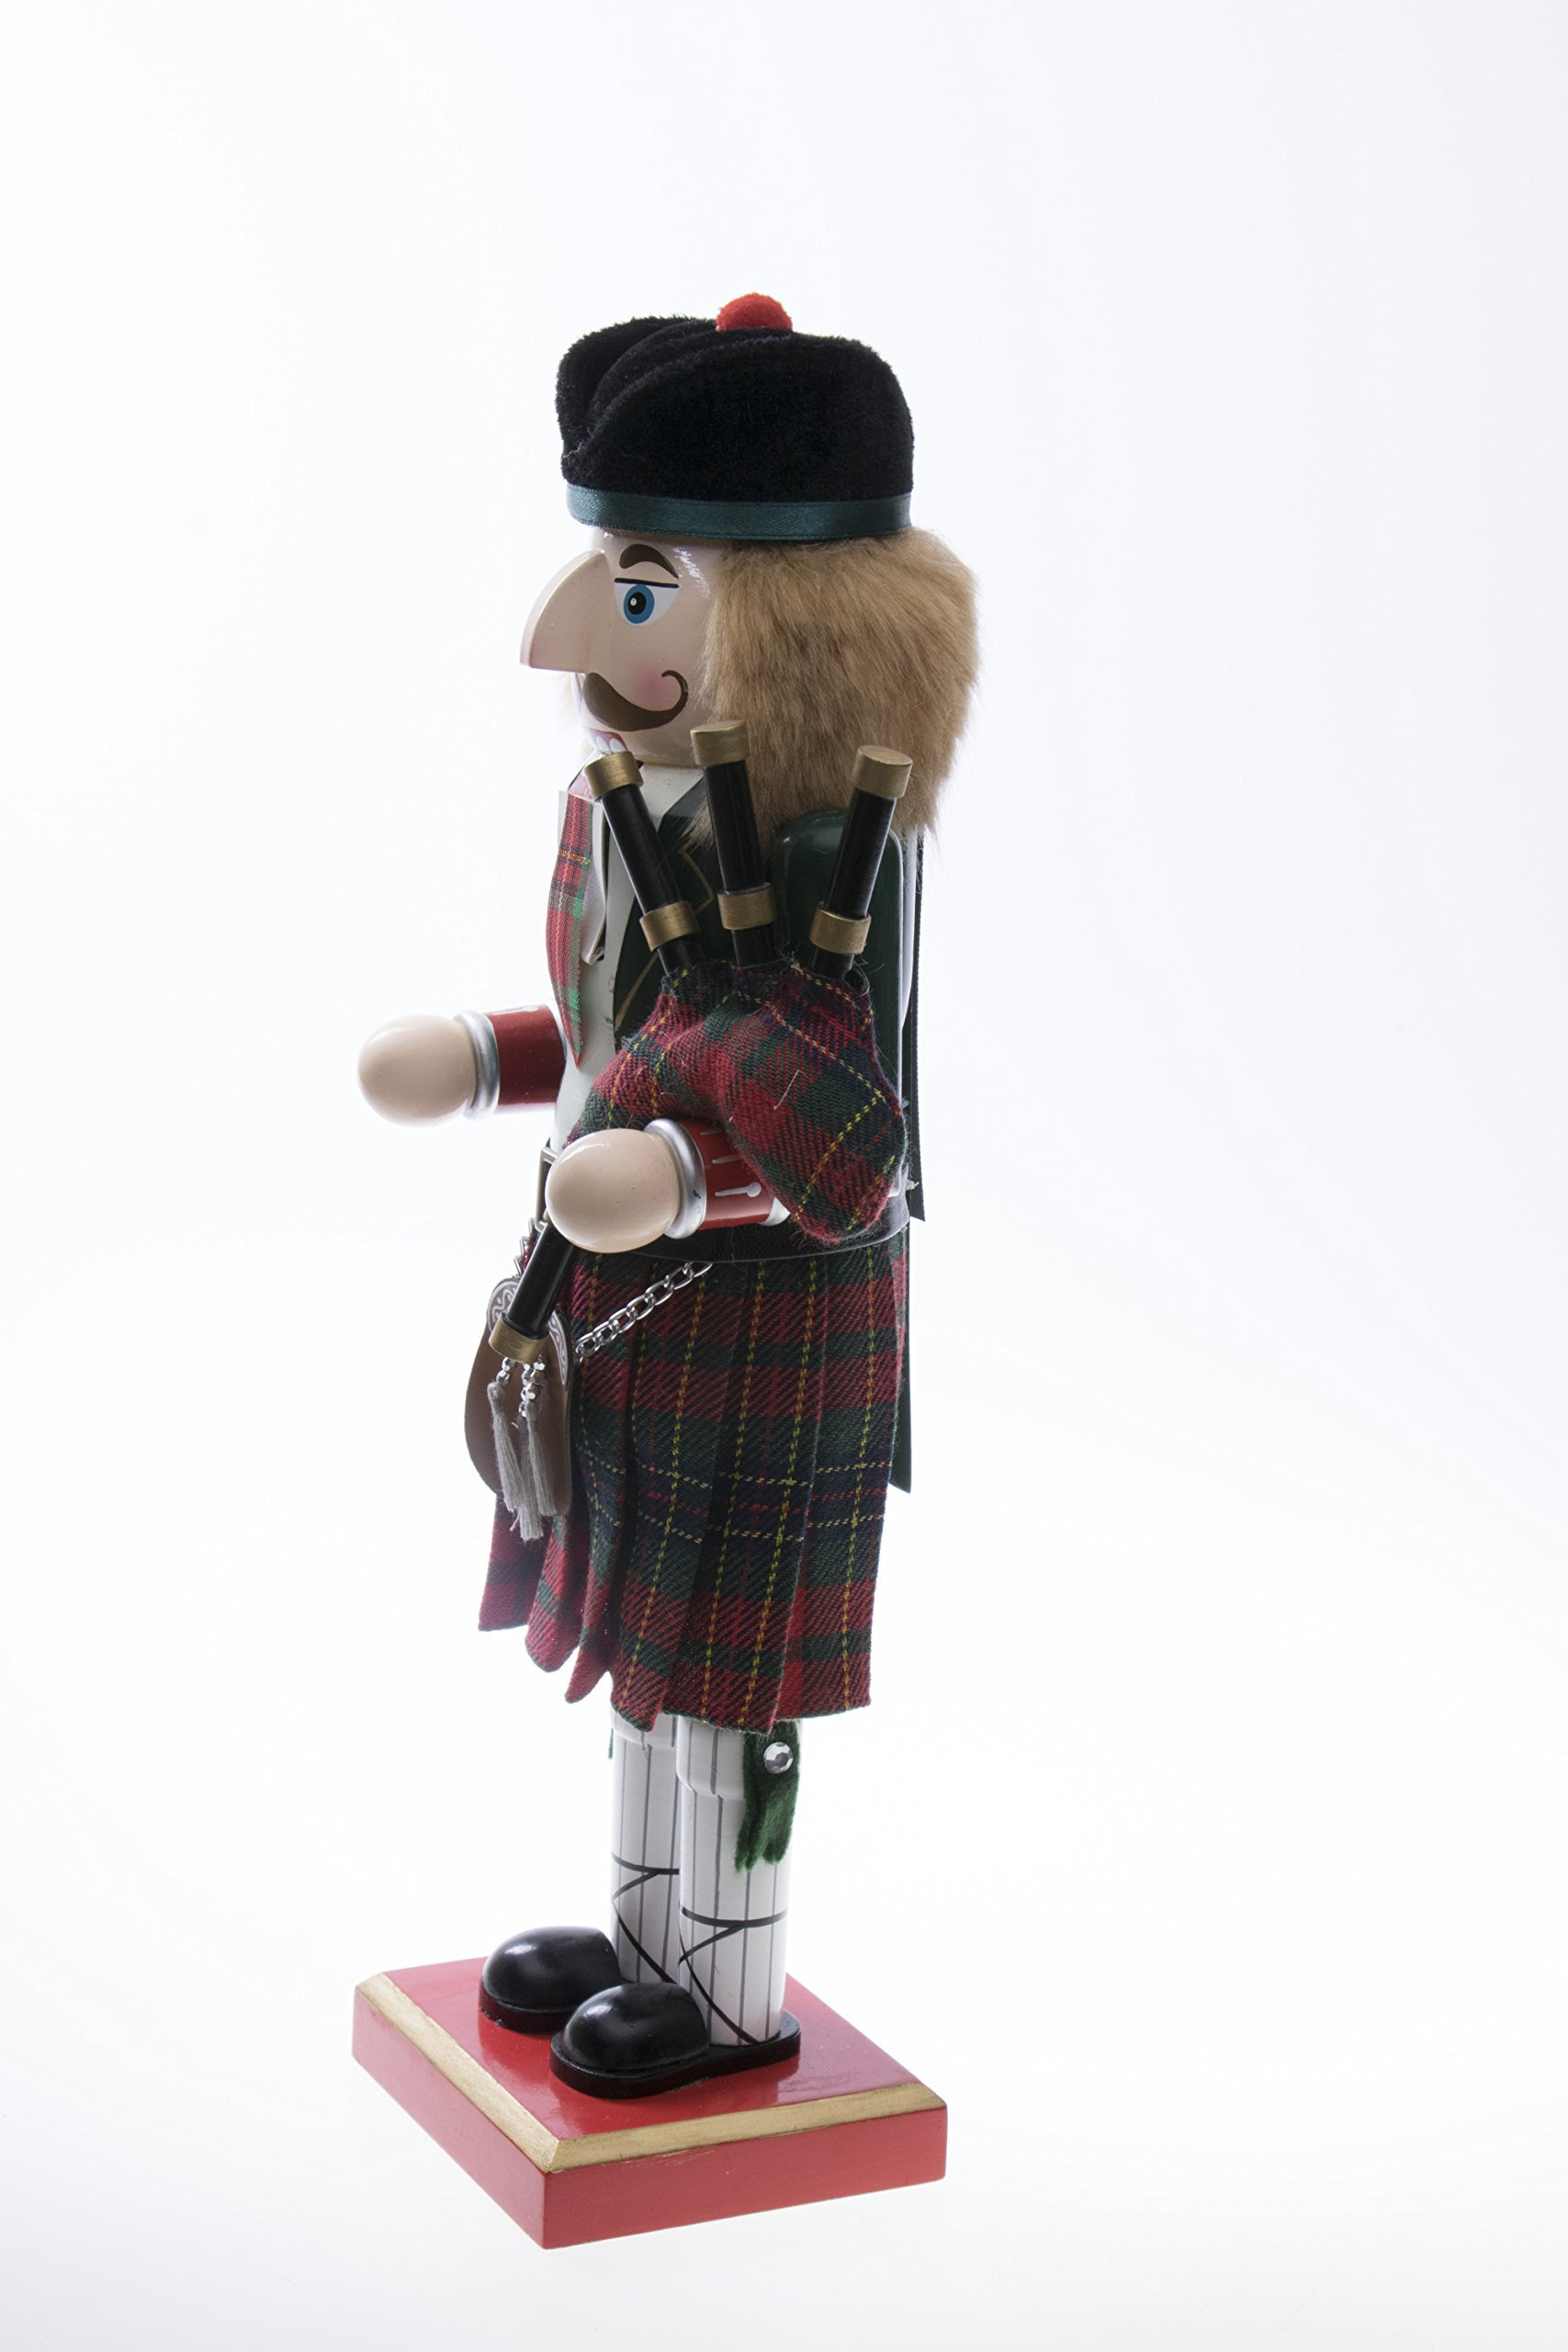 """Clever Creations Scottish Wooden Collectible Nutcracker Wearing Scottish Kilt, Green Coat, and Plaid Hat with Bagpipes 